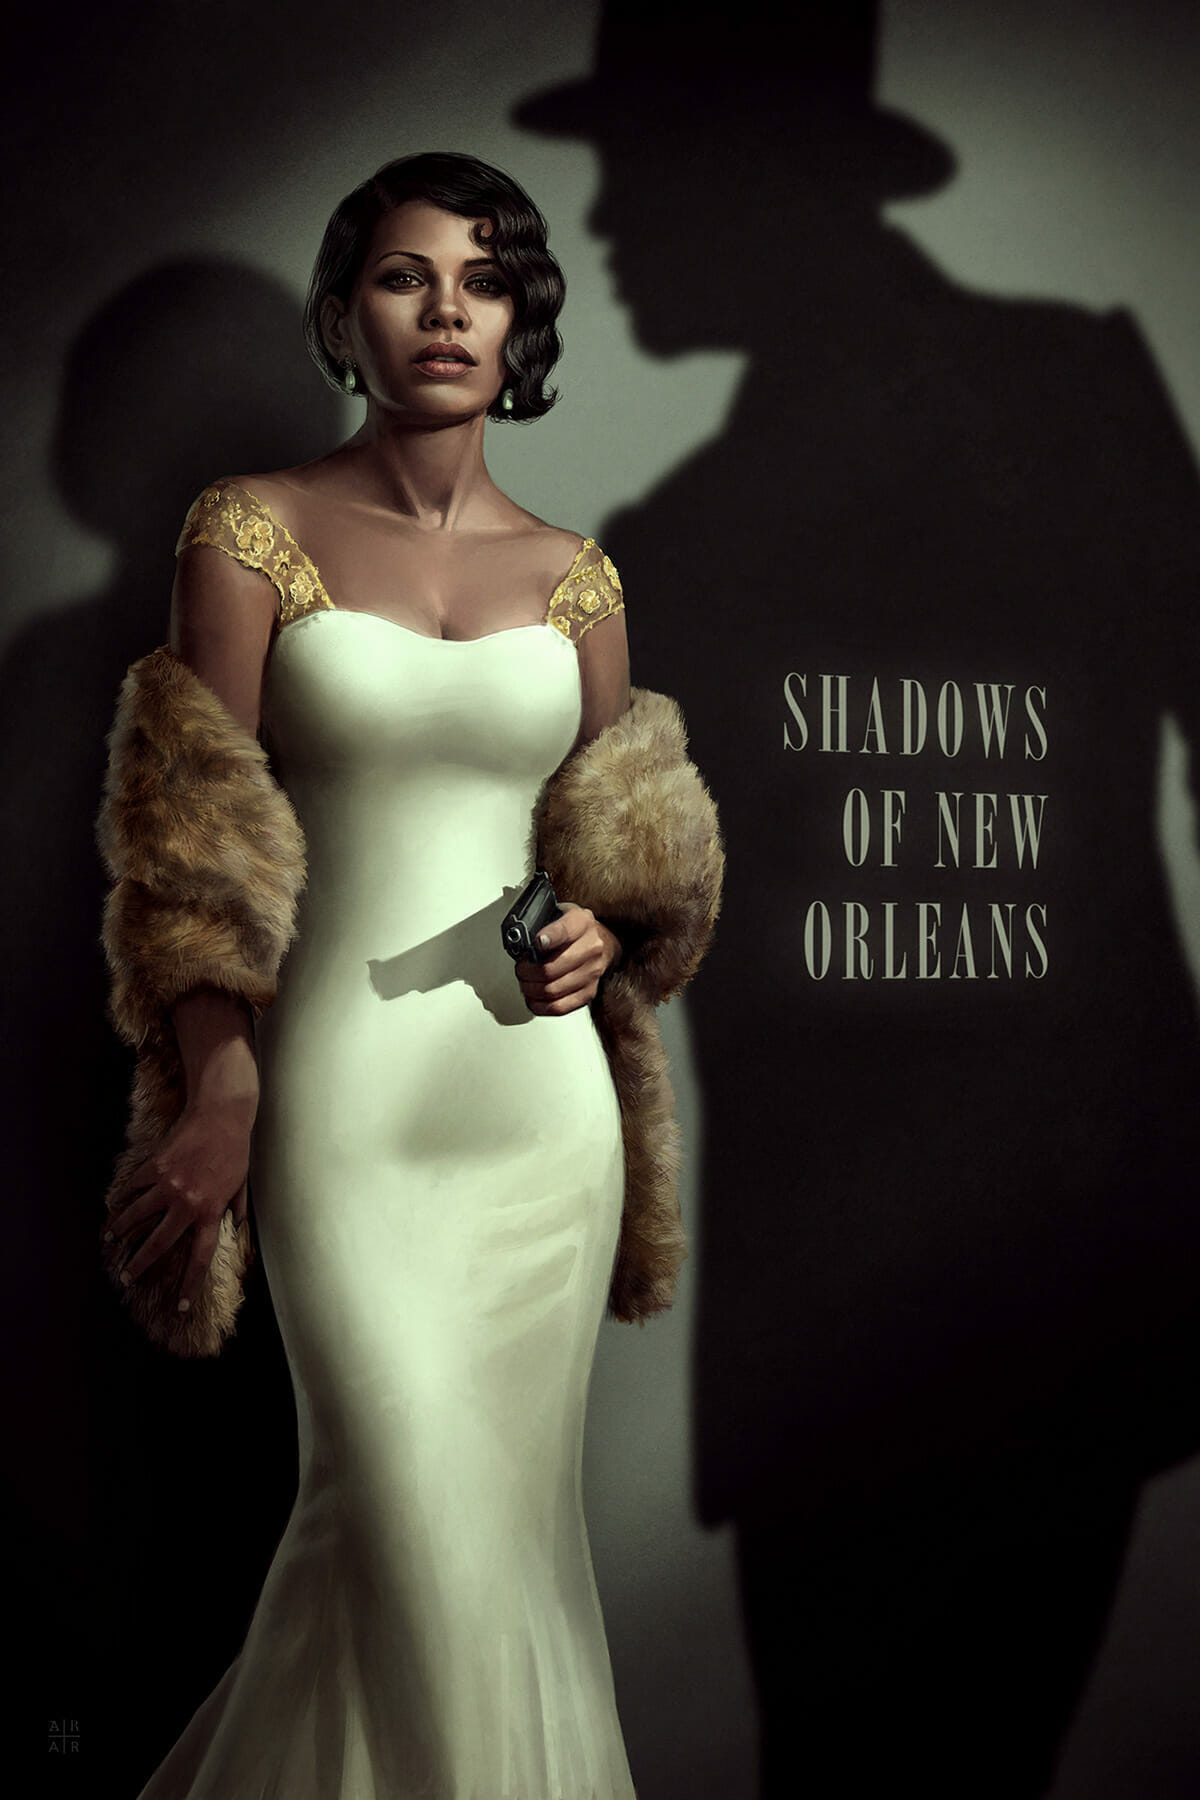 Shadows of New Orleans